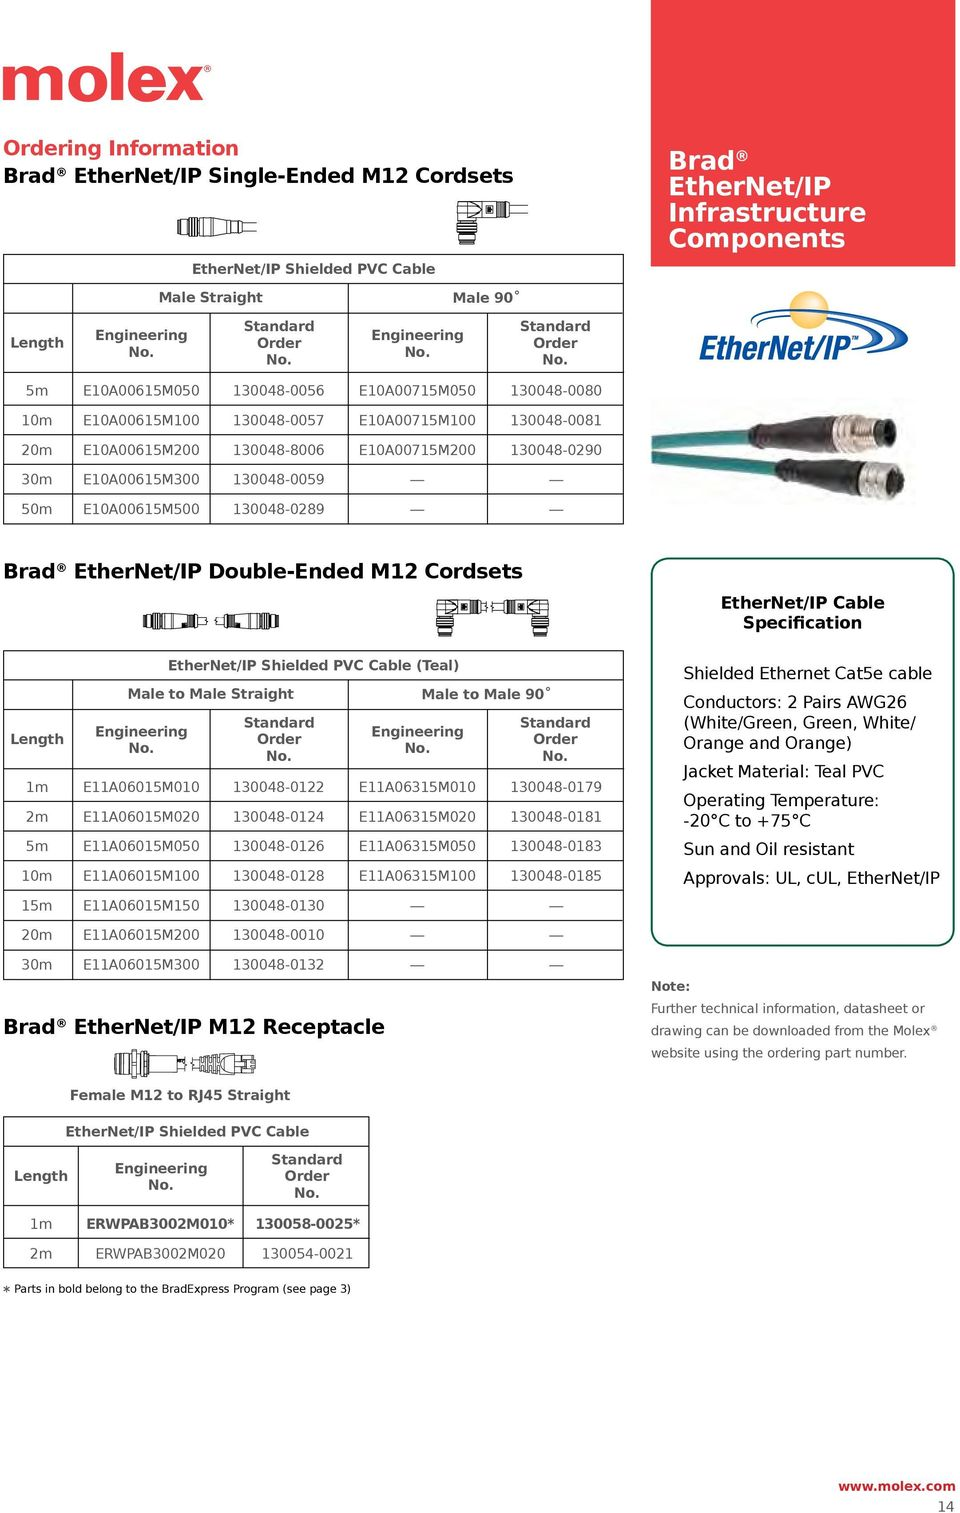 Specification 1 Male to Male Straight E11A0601M010 E11A0601M020 E11A0601M00 E11A0601M100 E11A0601M10 EtherNet/IP Shielded PVC Cable (Teal) 1008-0122 1008-012 1008-0126 1008-0128 1008-010 E11A061M010